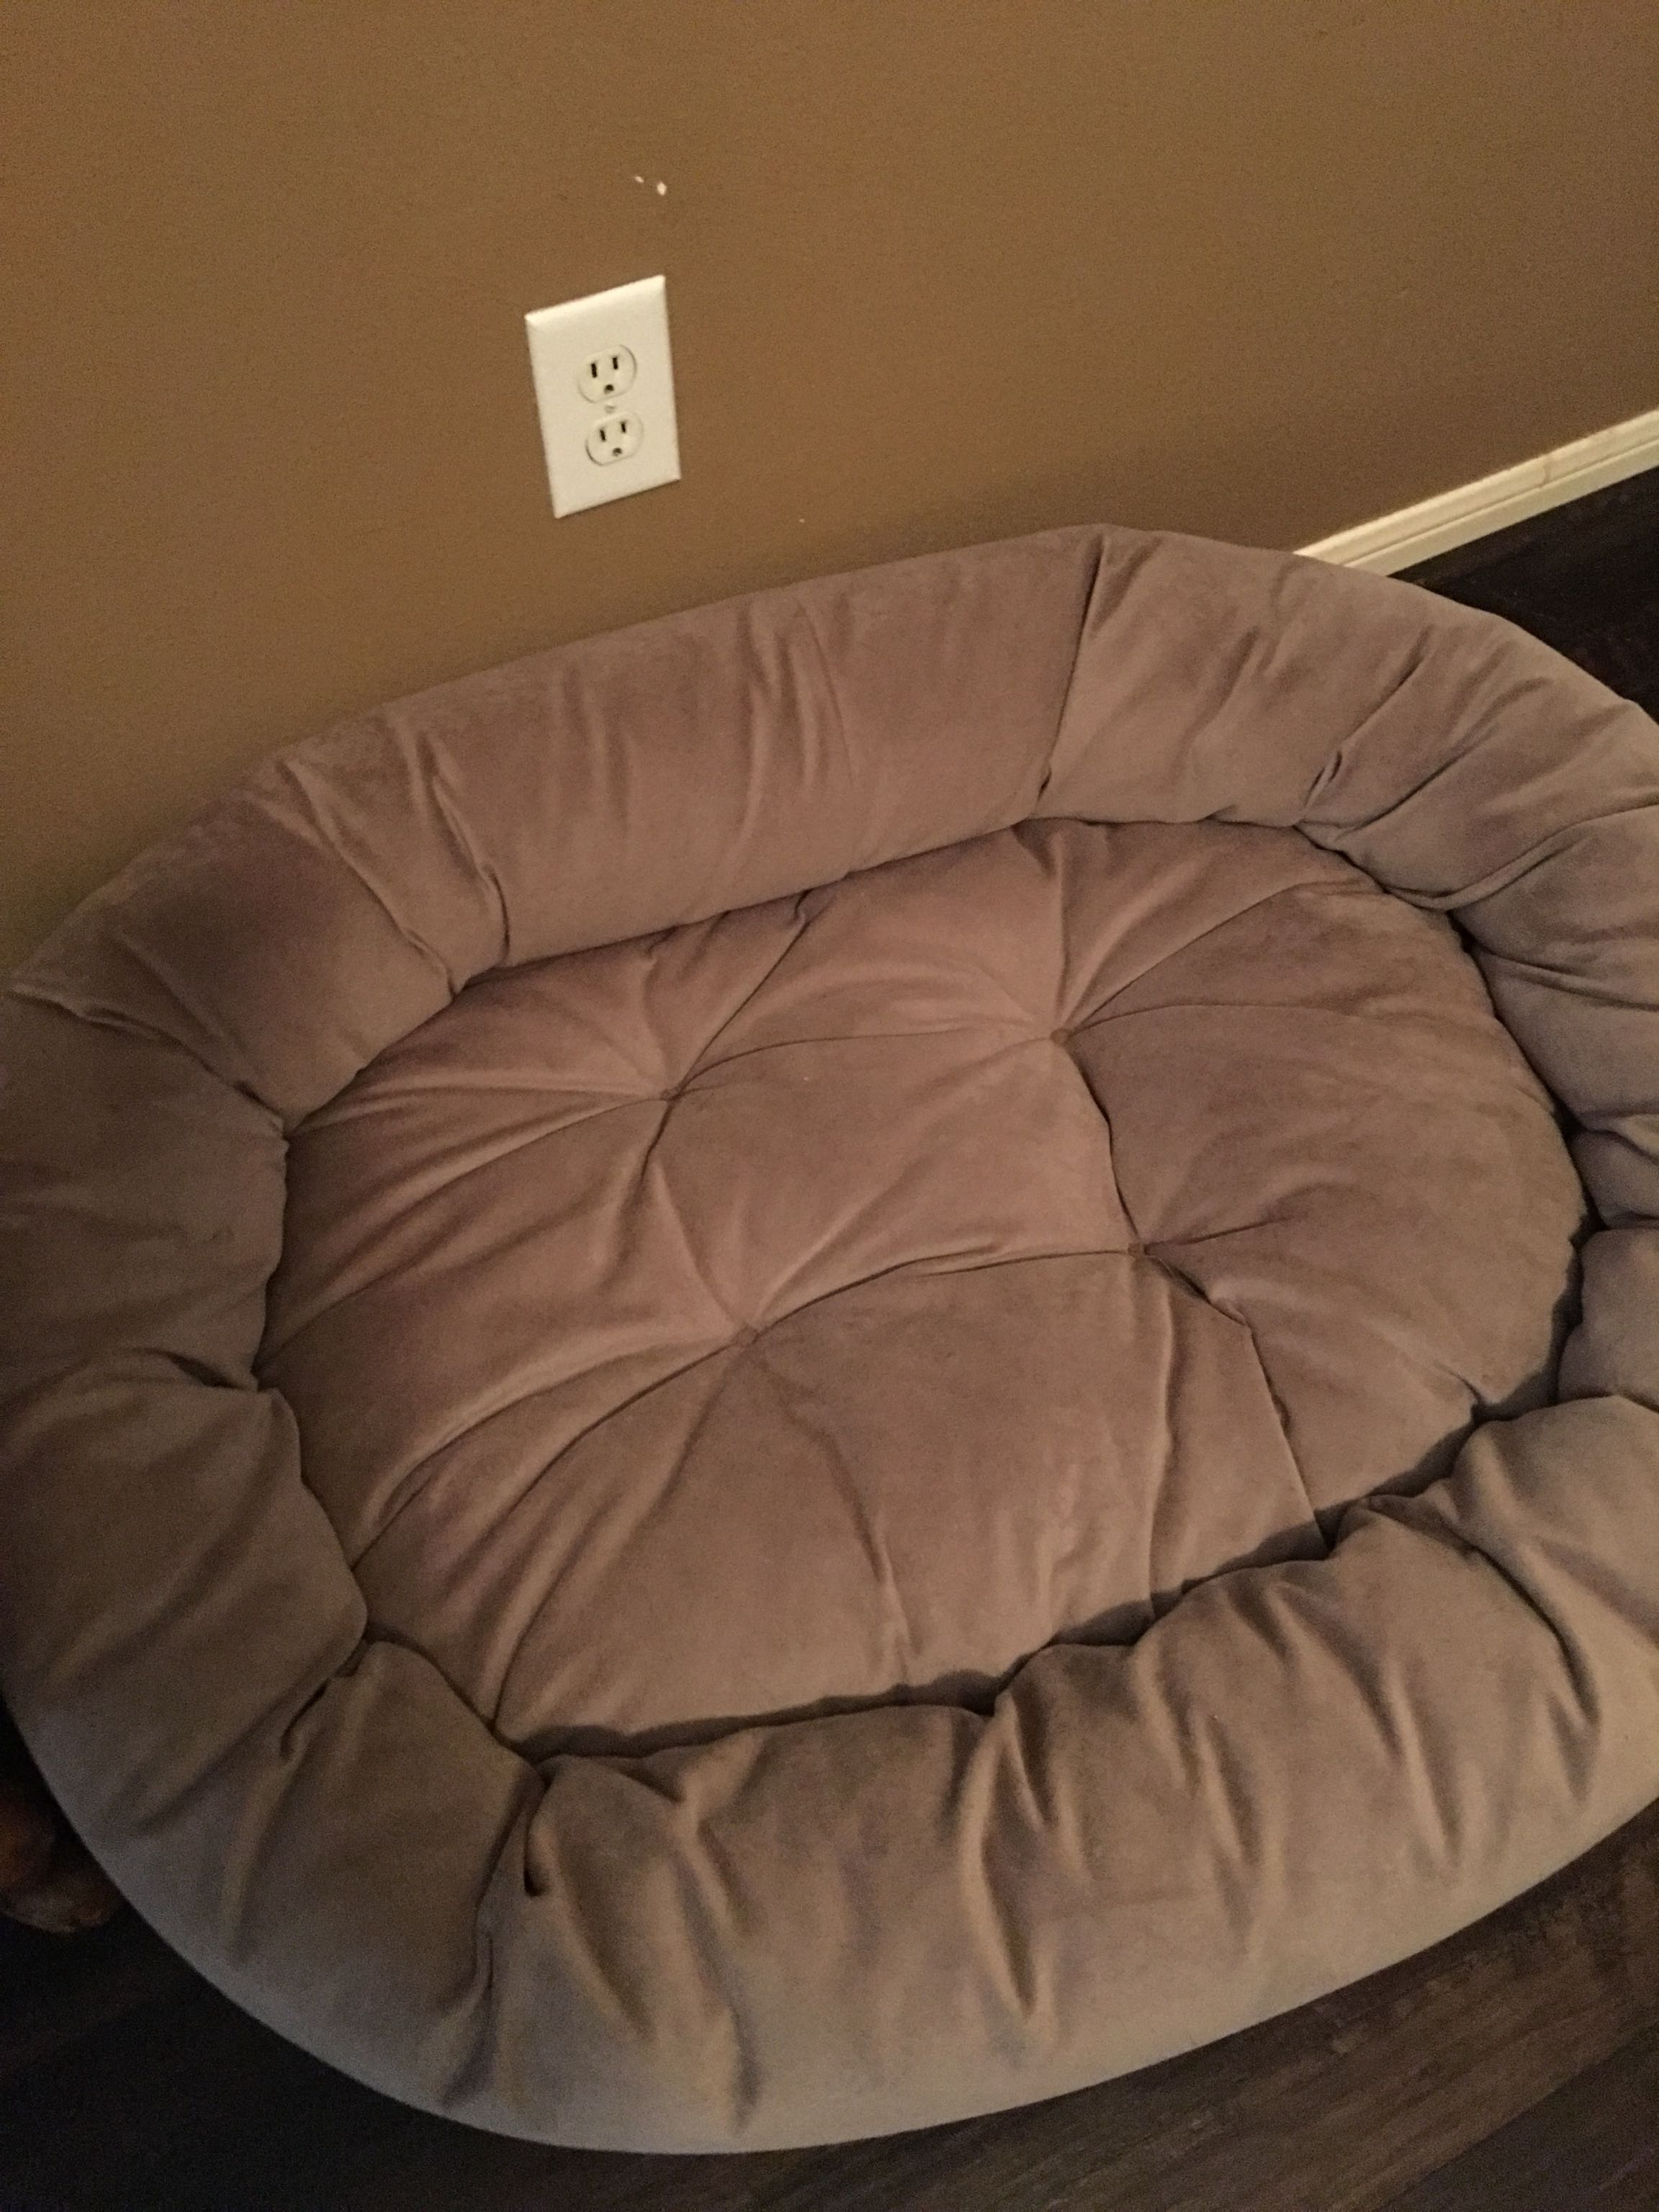 2 Plush Dog Beds from FRONTGATE